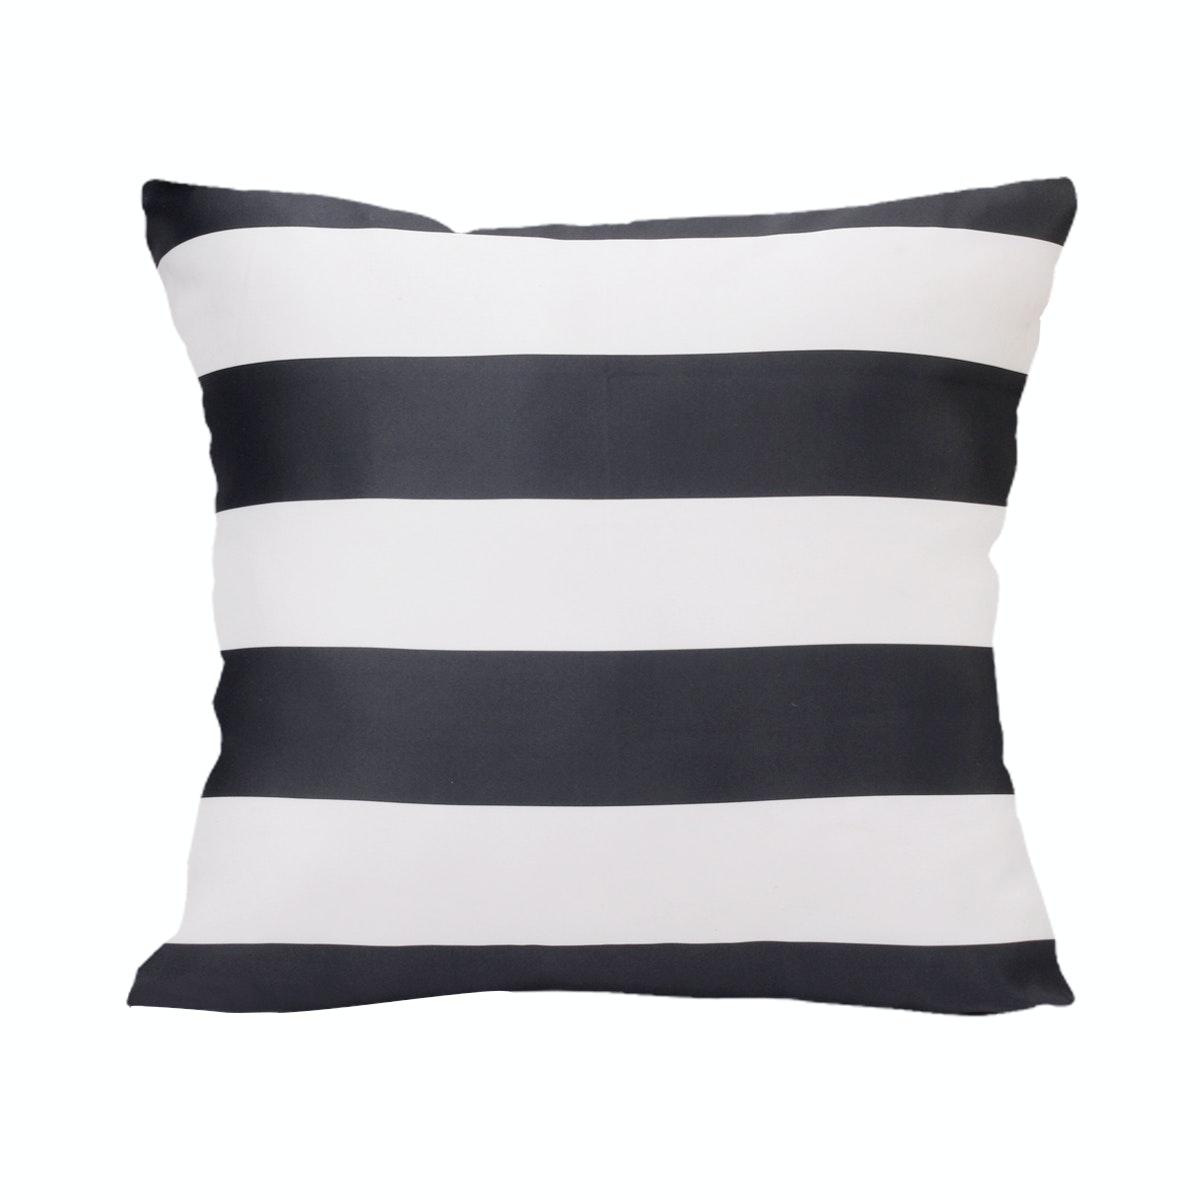 REVOPILLO Strippy Black Cushion 40cmx40cm